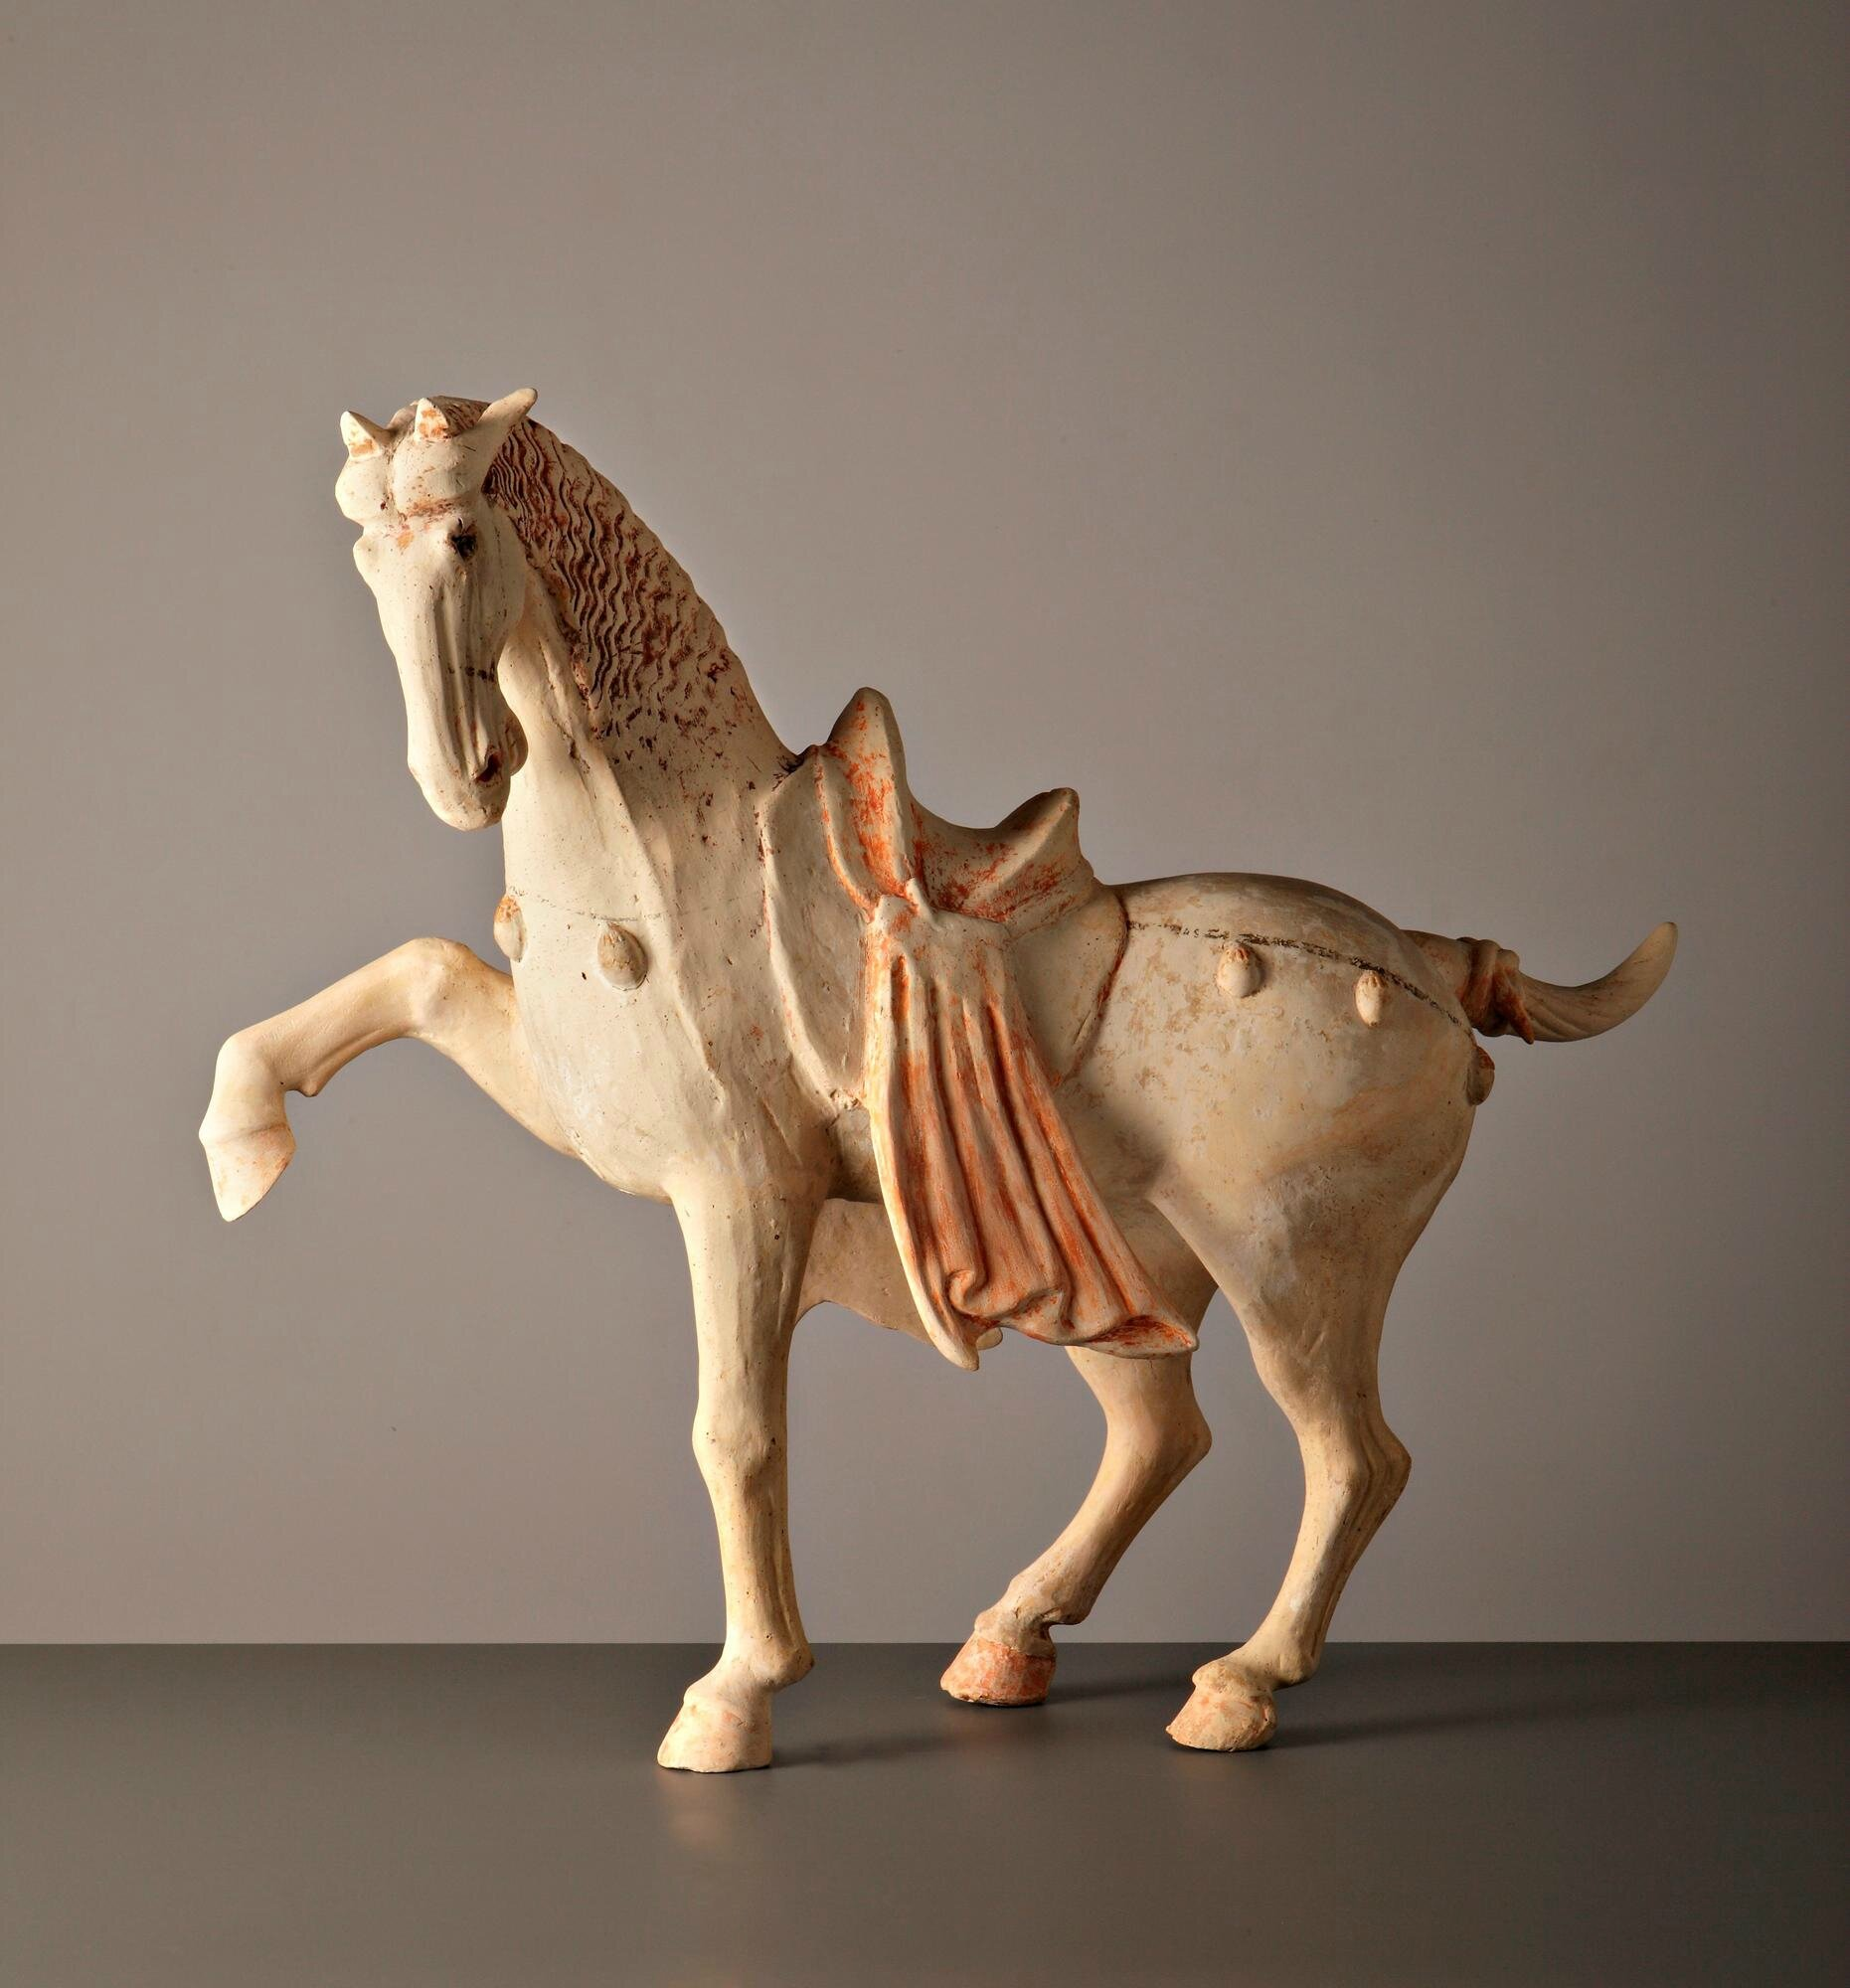 Dancing Horse, China, Tang dynasty (618-906)